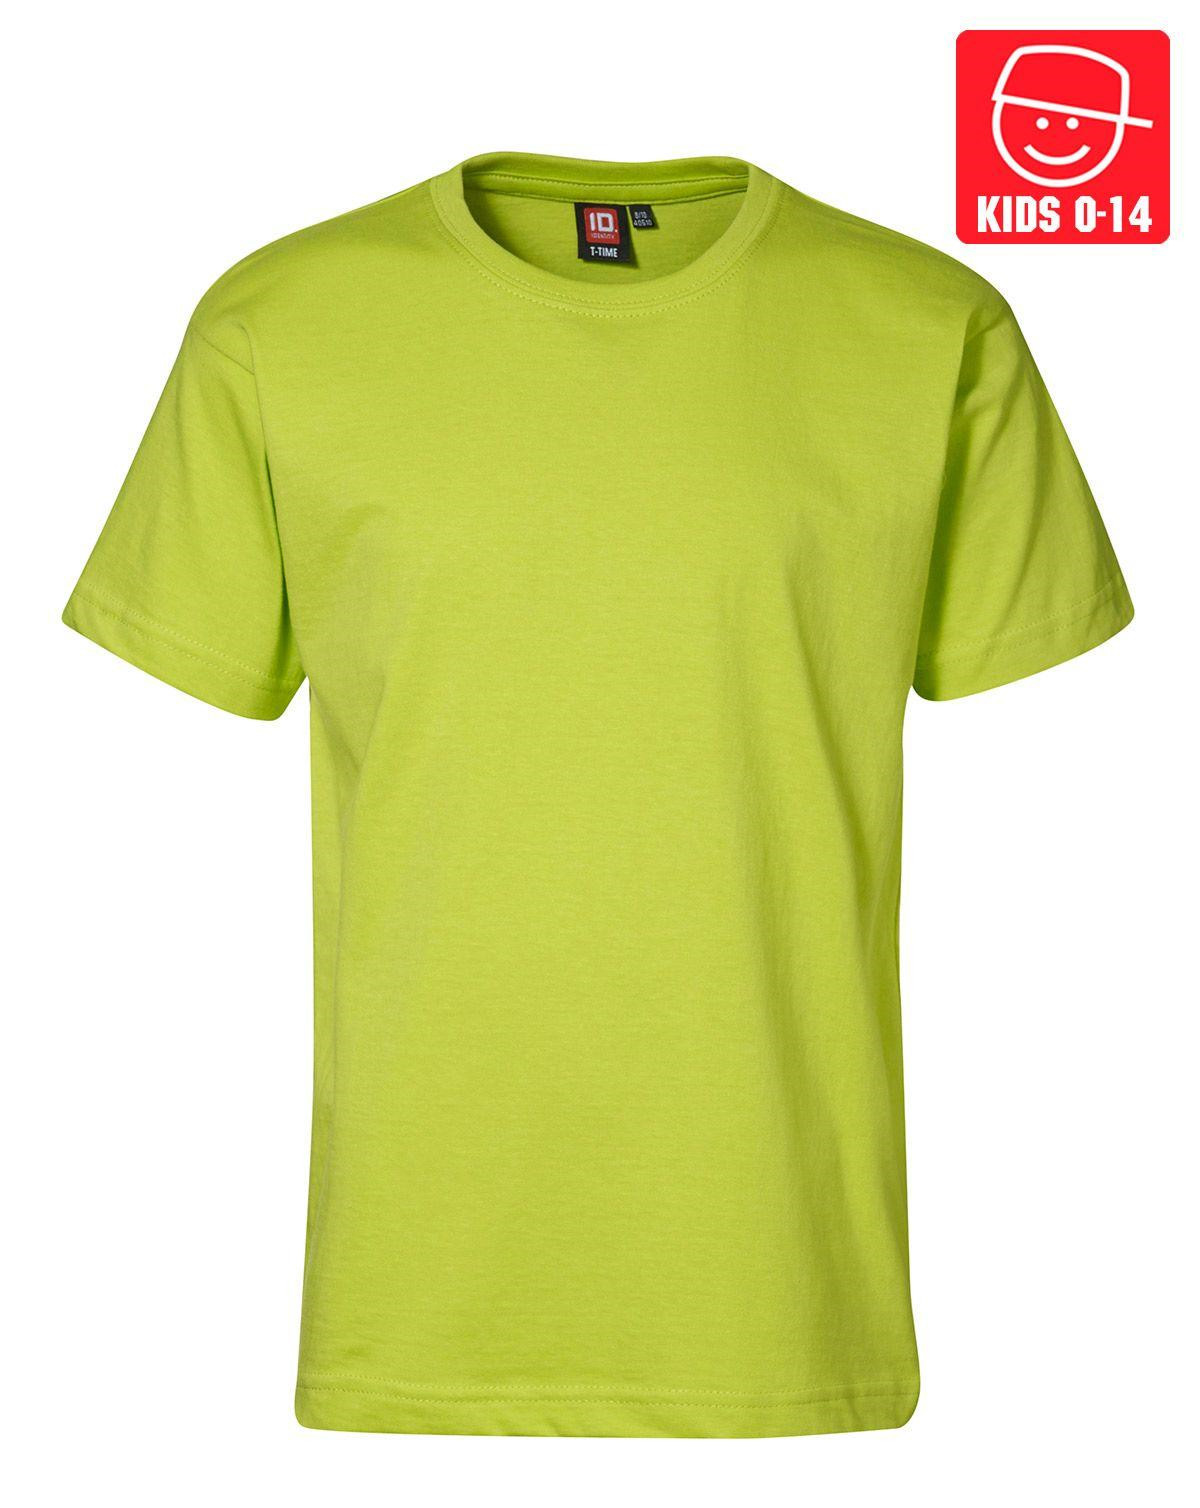 Image of   ID T-TIME T-shirt (Lime, 128)